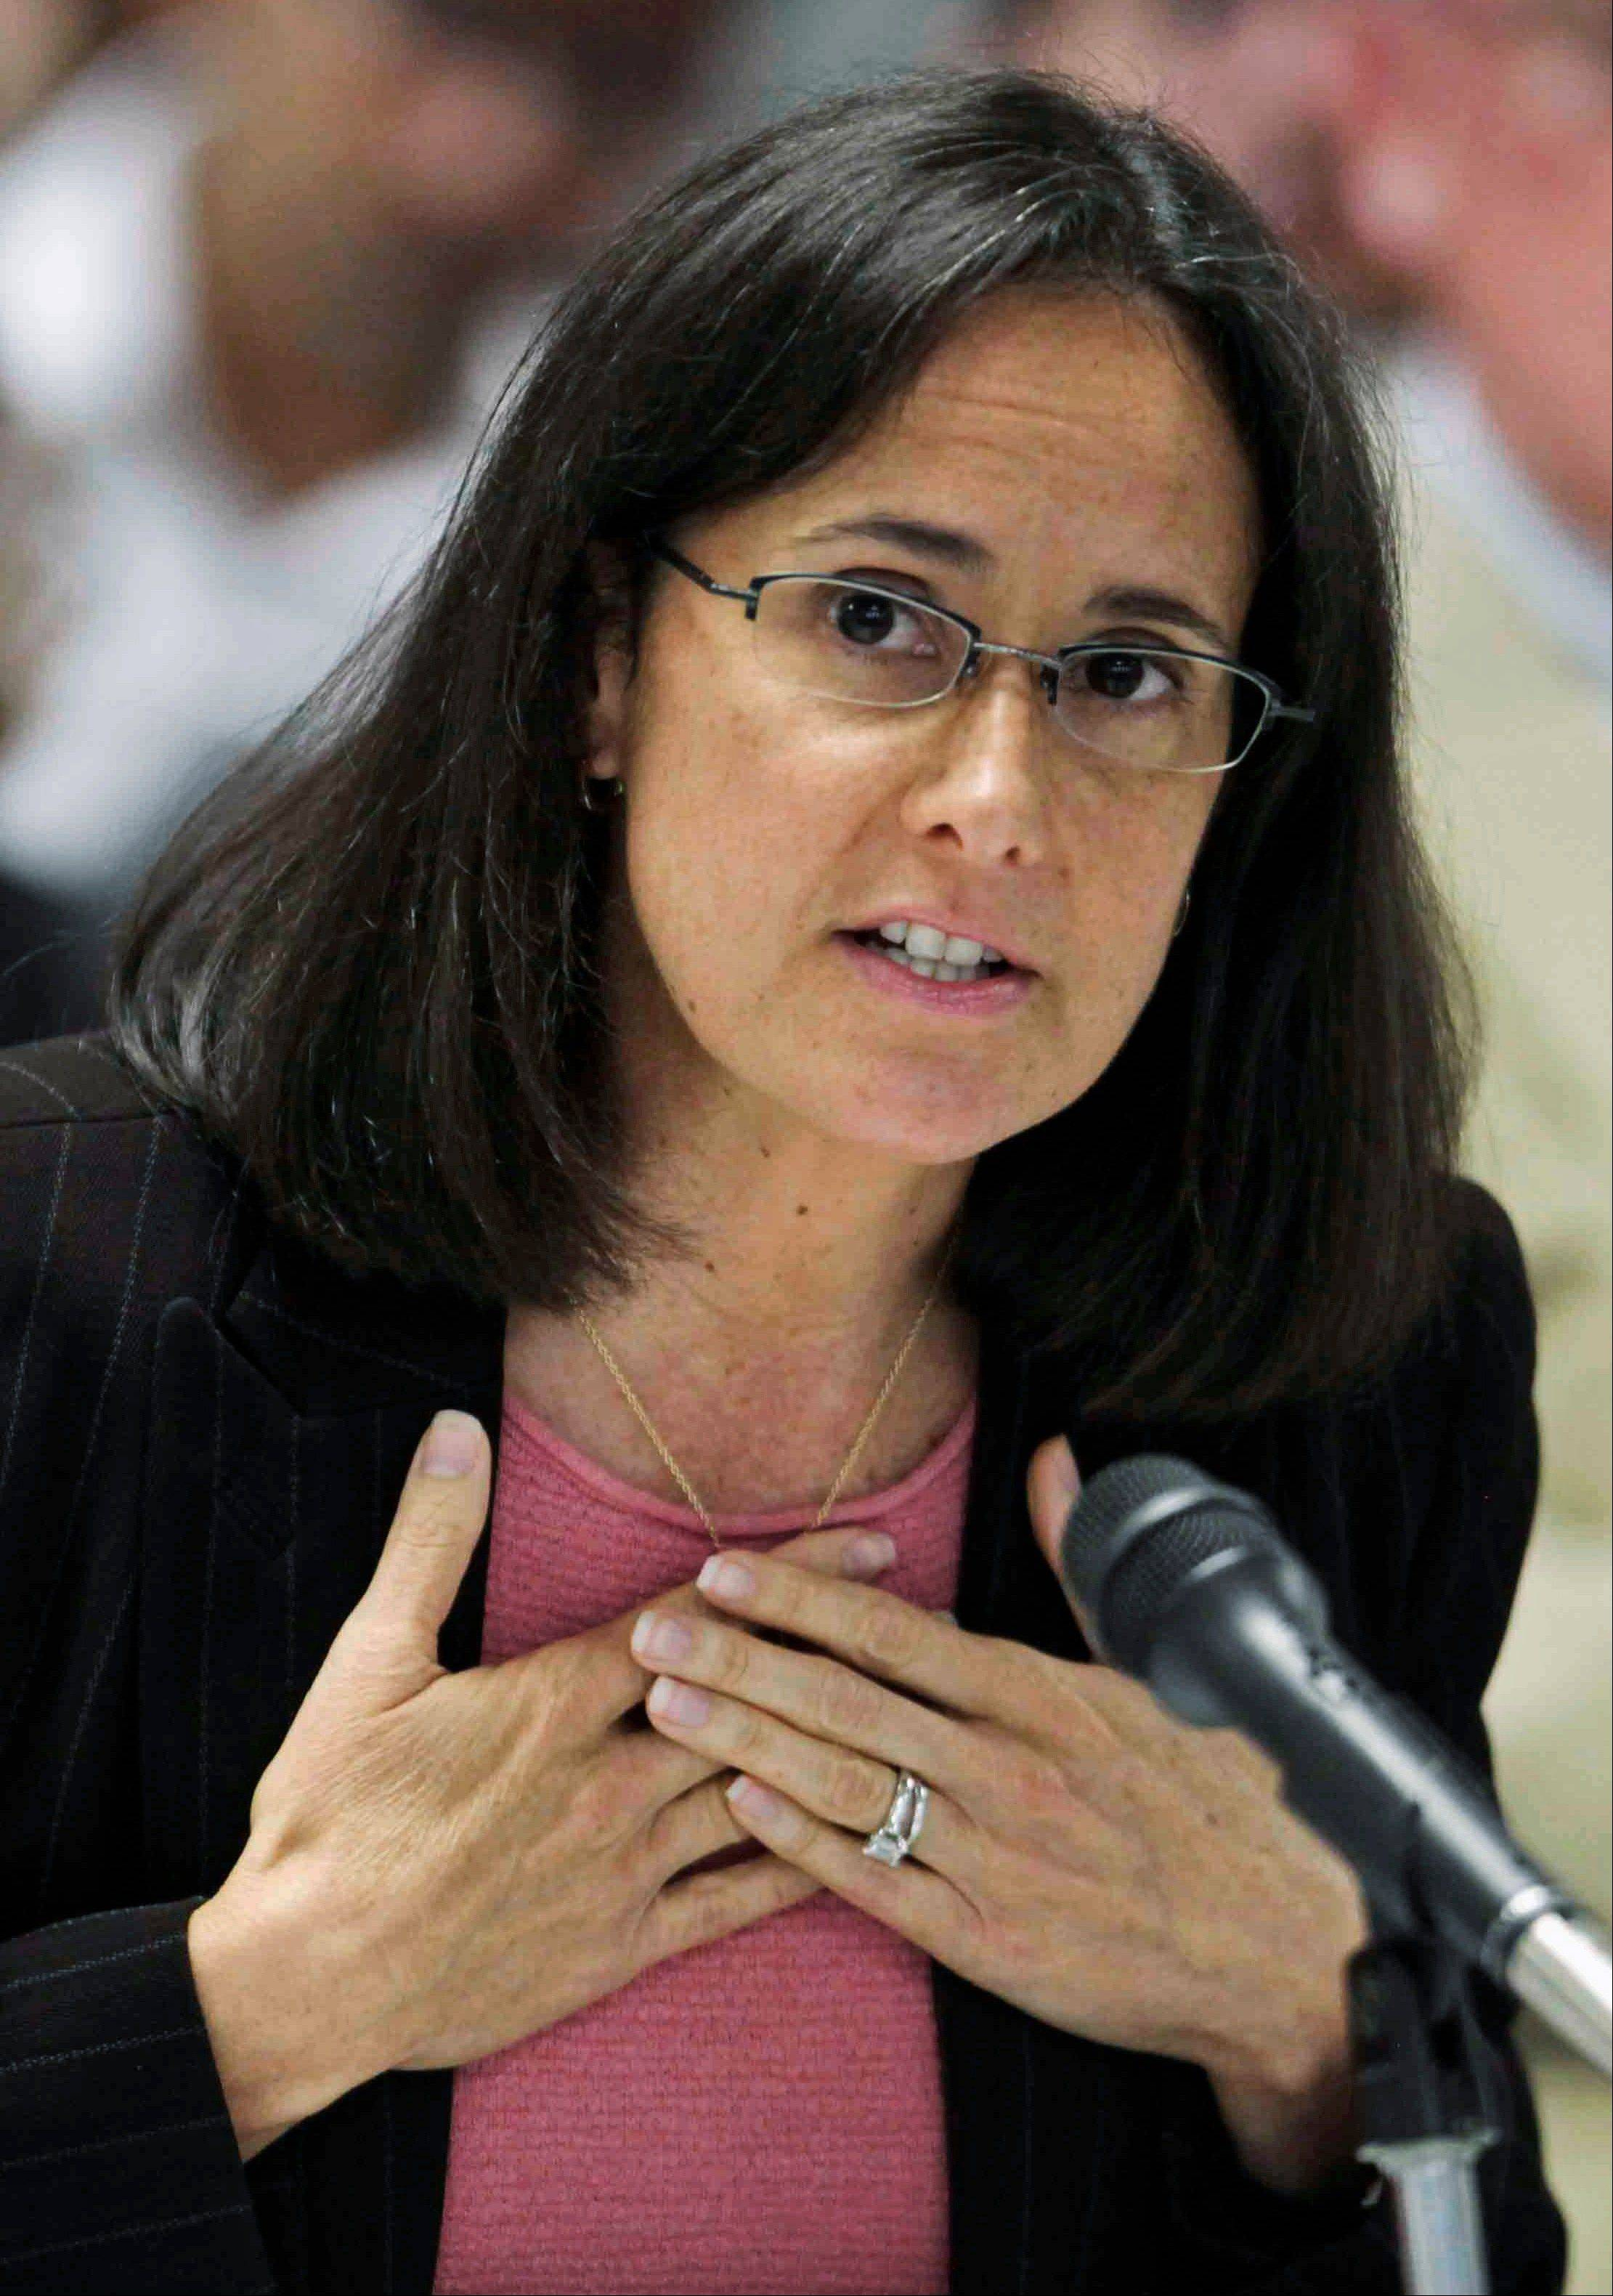 Illinois Attorney General Lisa Madigan has not yet decided whether to appeal the concealed carry ruling to the U.S. Supreme Court.